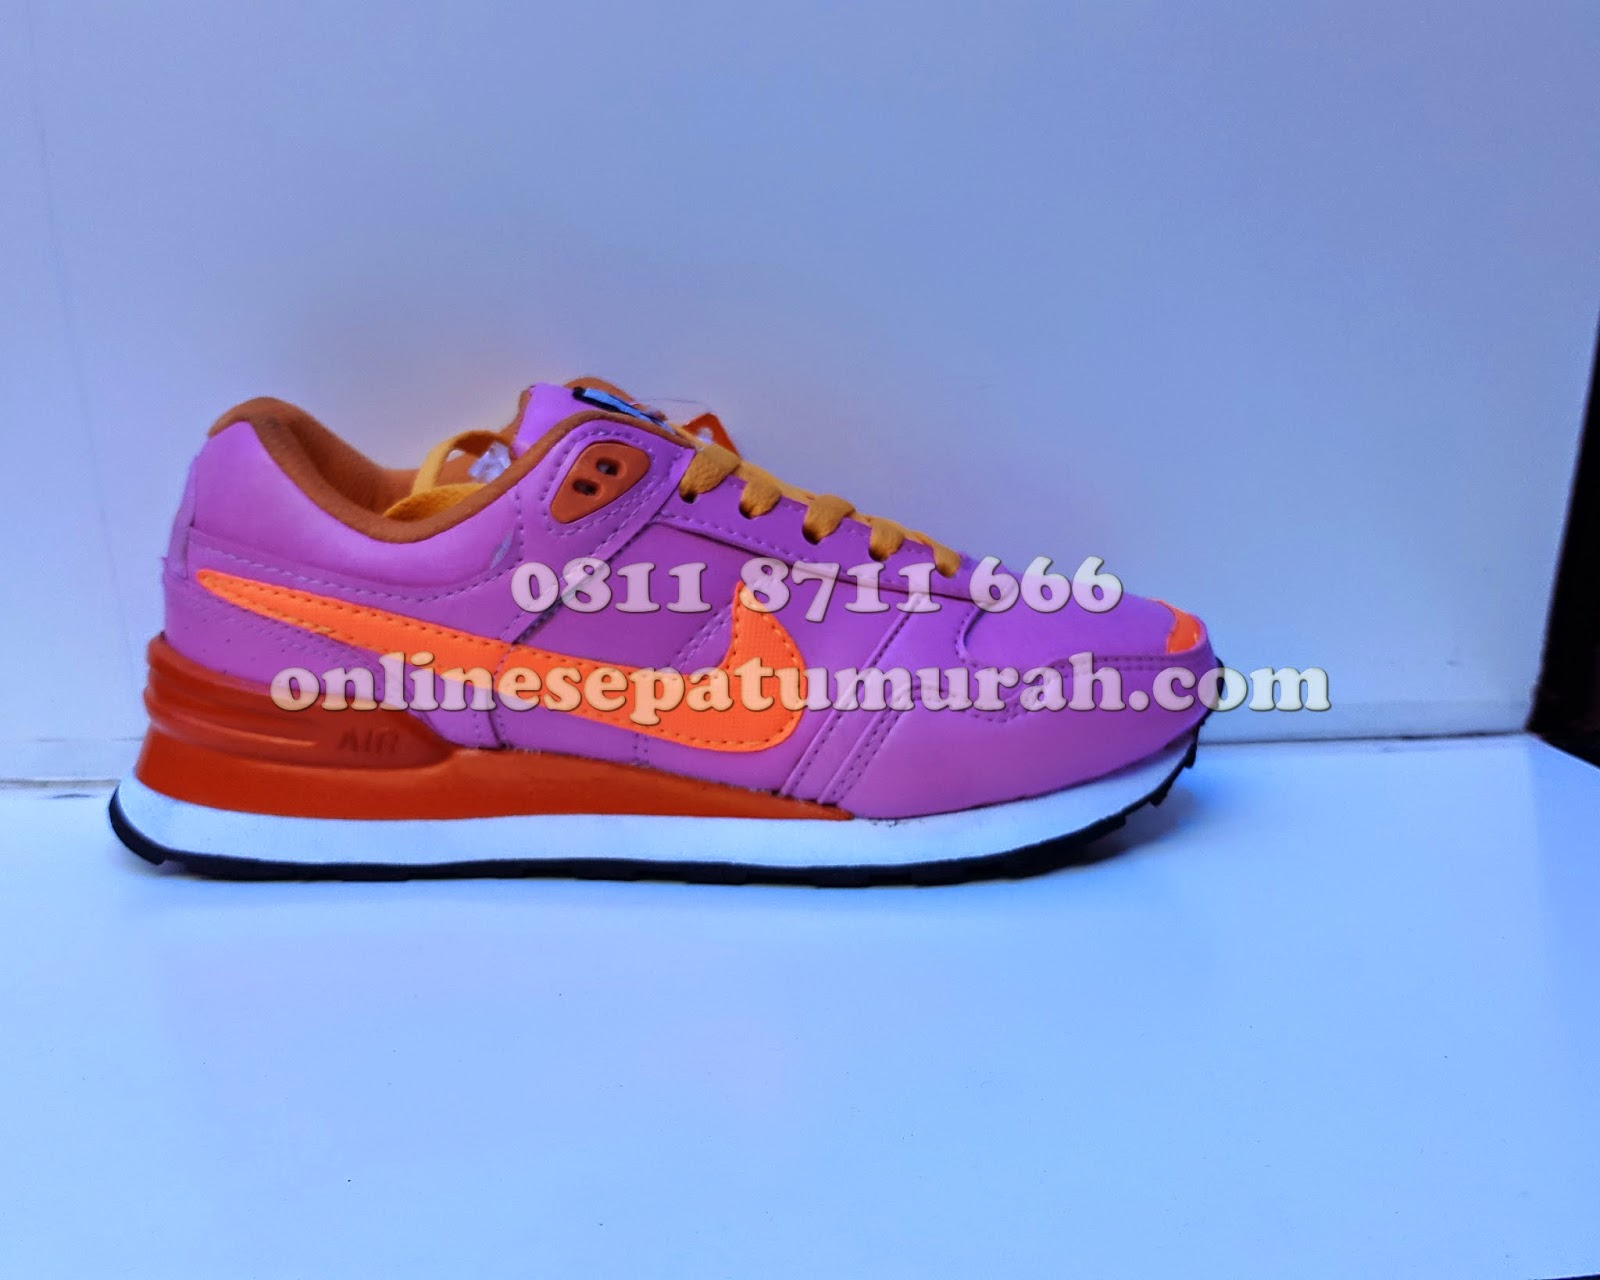 sepatu nike, sepatu nike womens, sepatu nike air, sepatu nike air pegaus, sepatu nike air pegasus 83, nike air pegasus 83 women, nike air pegasus 83 wanita, nike air pegasus 83 perempuan, nike air pegasus 83 cewek, nike air pegasus 83 girls, nike air pegasus 83 ladies, nike air pegasus 83 casual, nike air pegasus 83 murah, nike air pegasus 83 women baru, nike air pegasus 83 women gaya, order nike air pegasus 83 women, agen nike air pegasus 83 women, suplier nike air pegasus 83 women, online nike air pegasus 83 women, toko nike air pegasus 83 women, mall nike air pegasus 83 women, outlet nike air pegasus 83 women, pasar nike air pegasus 83 women, store nike air pegasus 83 women, jual nike air pegasus 83 women, beli nike air pegasus 83 women, belanja nike air pegasus 83 women, grosir nike air pegasus 83 women, ecer nike air pegasus 83 women, nike air pegasus 83 women super, nike air pegasus 83 women import, gambar nike air pegasus 83 women, price nike air pegasus 83 women, harga nike air pegasus 83 women, picture nike air pegasus 83 women, cari nike air pegasus 83 women, search nike air pegasus 83 women, buy nike air pegasus 83 women, nike air pegasus 83 women fashion, toko sepatu online nike air pegasus 83 women murah